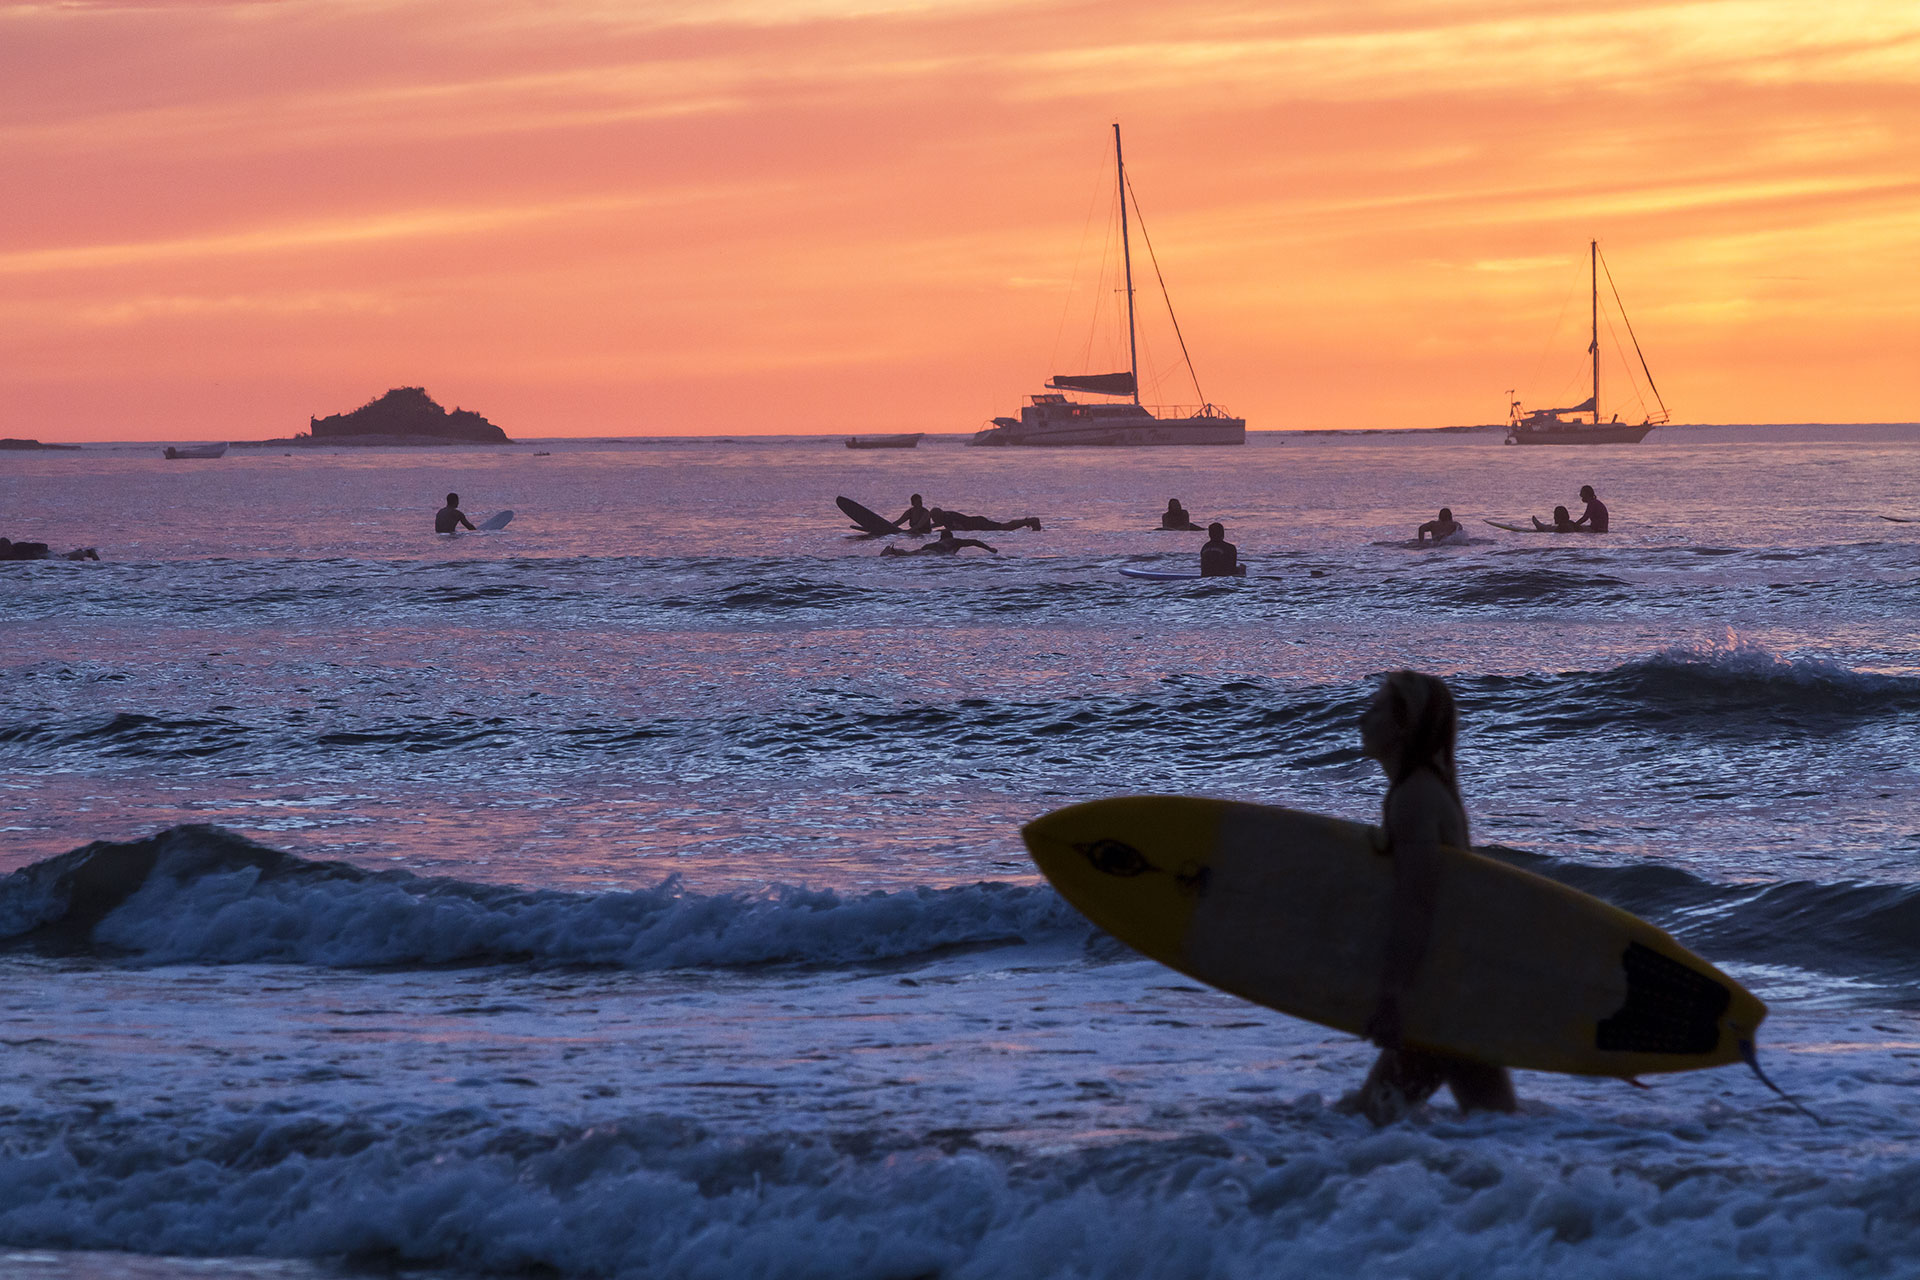 Surfing in Tamarindo, Costa Rica; Courtesy of Colin D. Young/Shutterstock.com